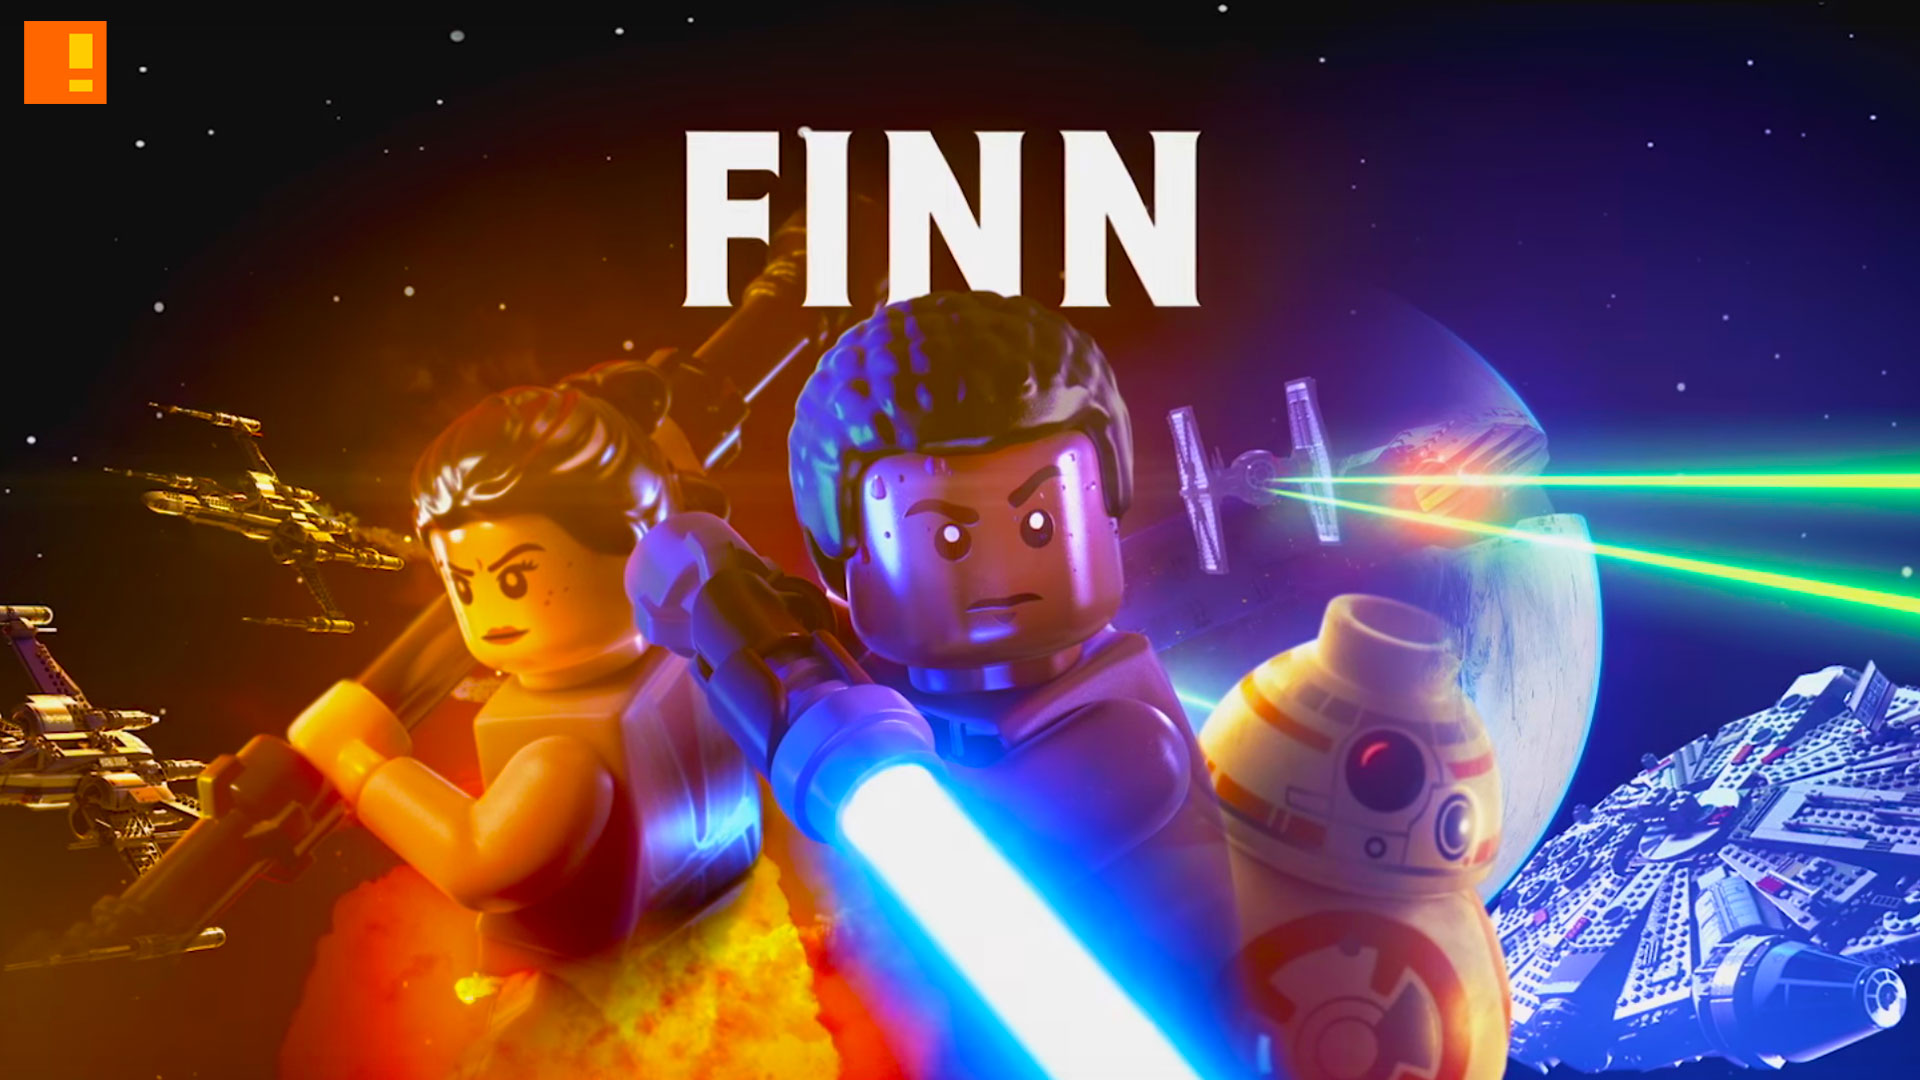 finn, lego star wars , star wars , the force awakens, star wars the force awakens, character, vignette, marvel, lucasfilm, wb games, the action pixel, entertainment on tap,